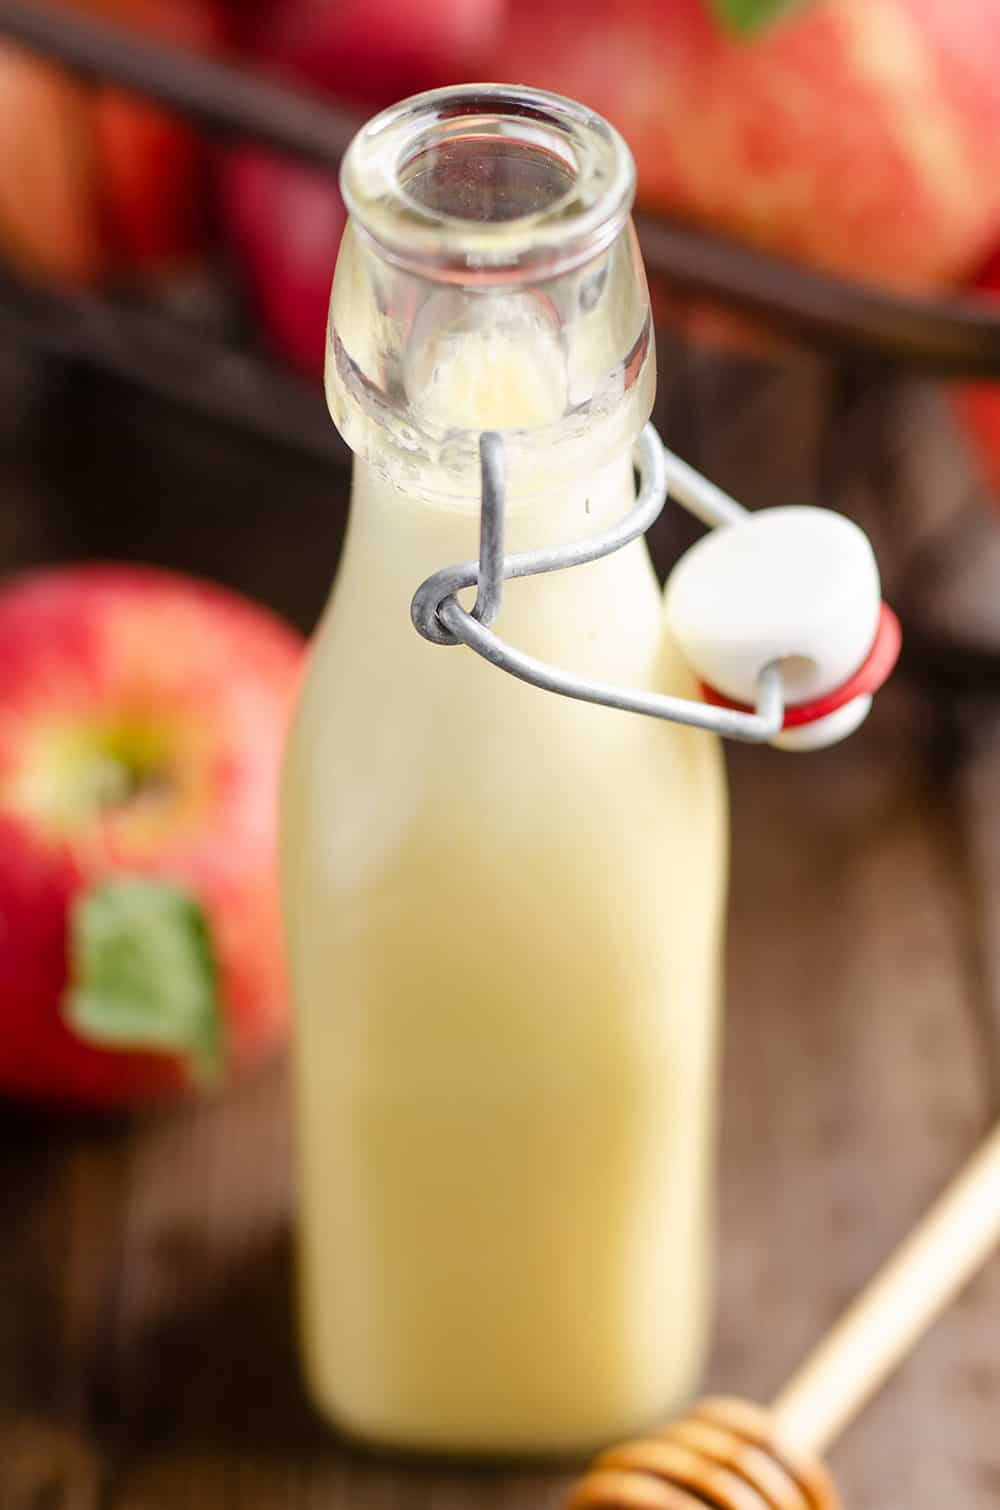 Light Apple Cider Vinaigrette in homemade bottle